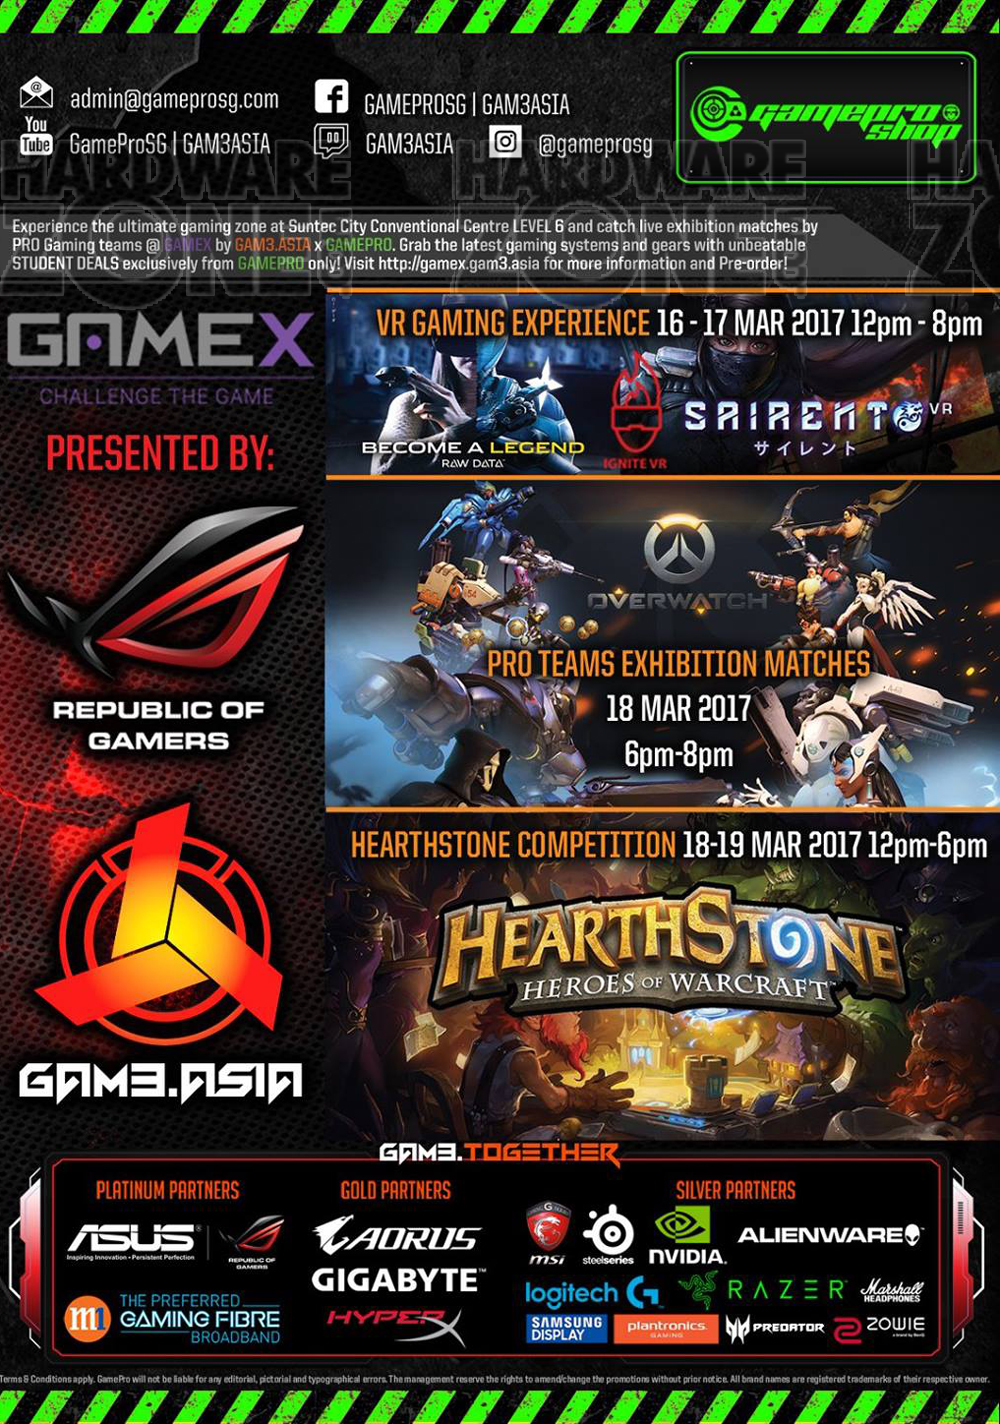 Asus gaming desktops amp monitors brochures from cee show 2016 singapore - Game Asia At Gamex